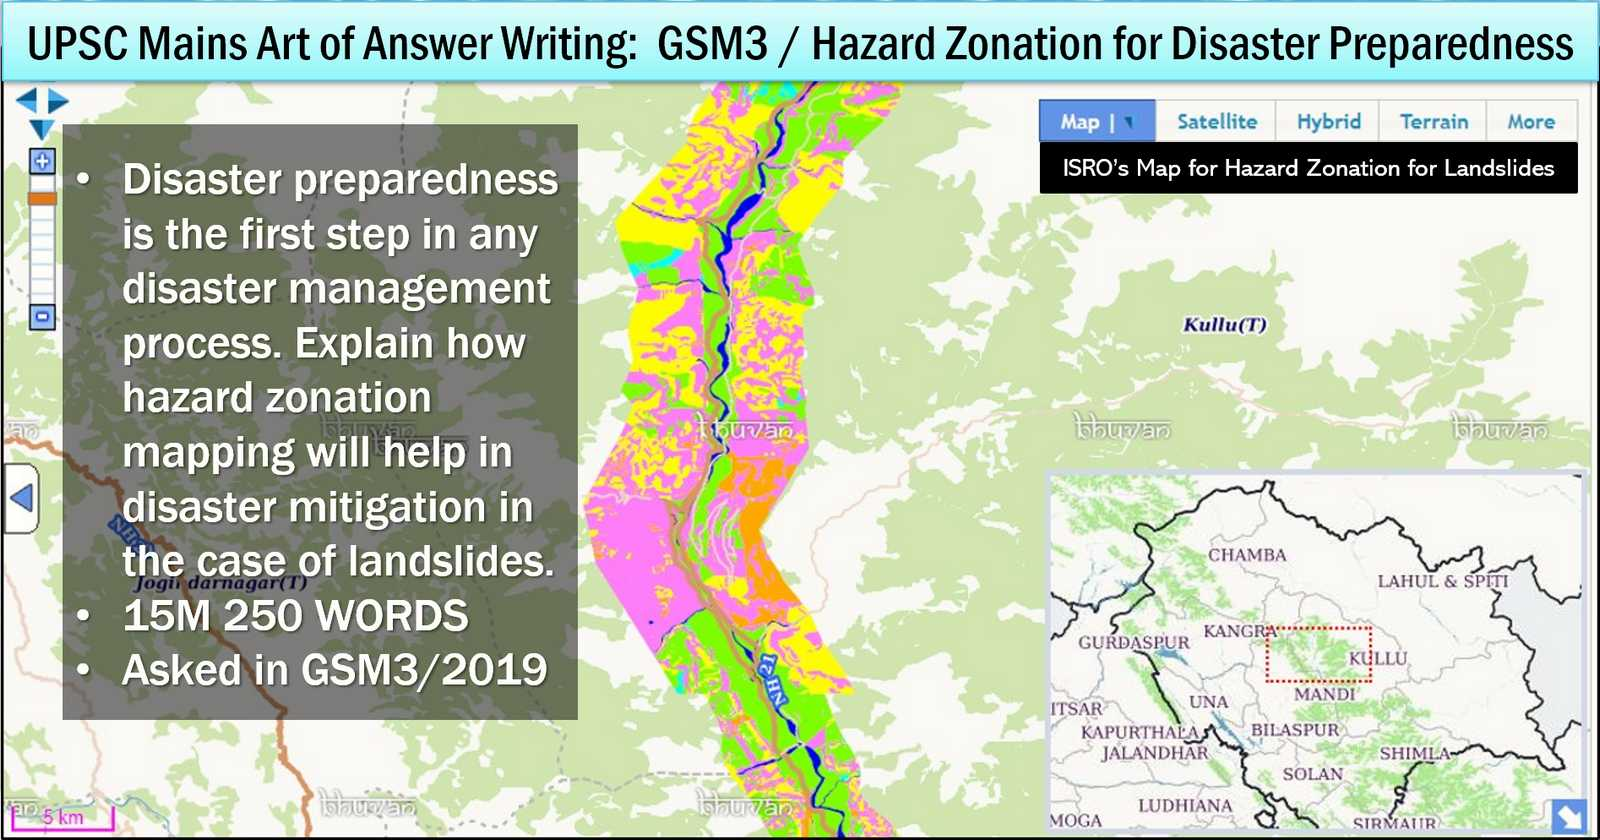 UPSC Mains Model Answer Writing Framework for hazard zonation mapping for landslides